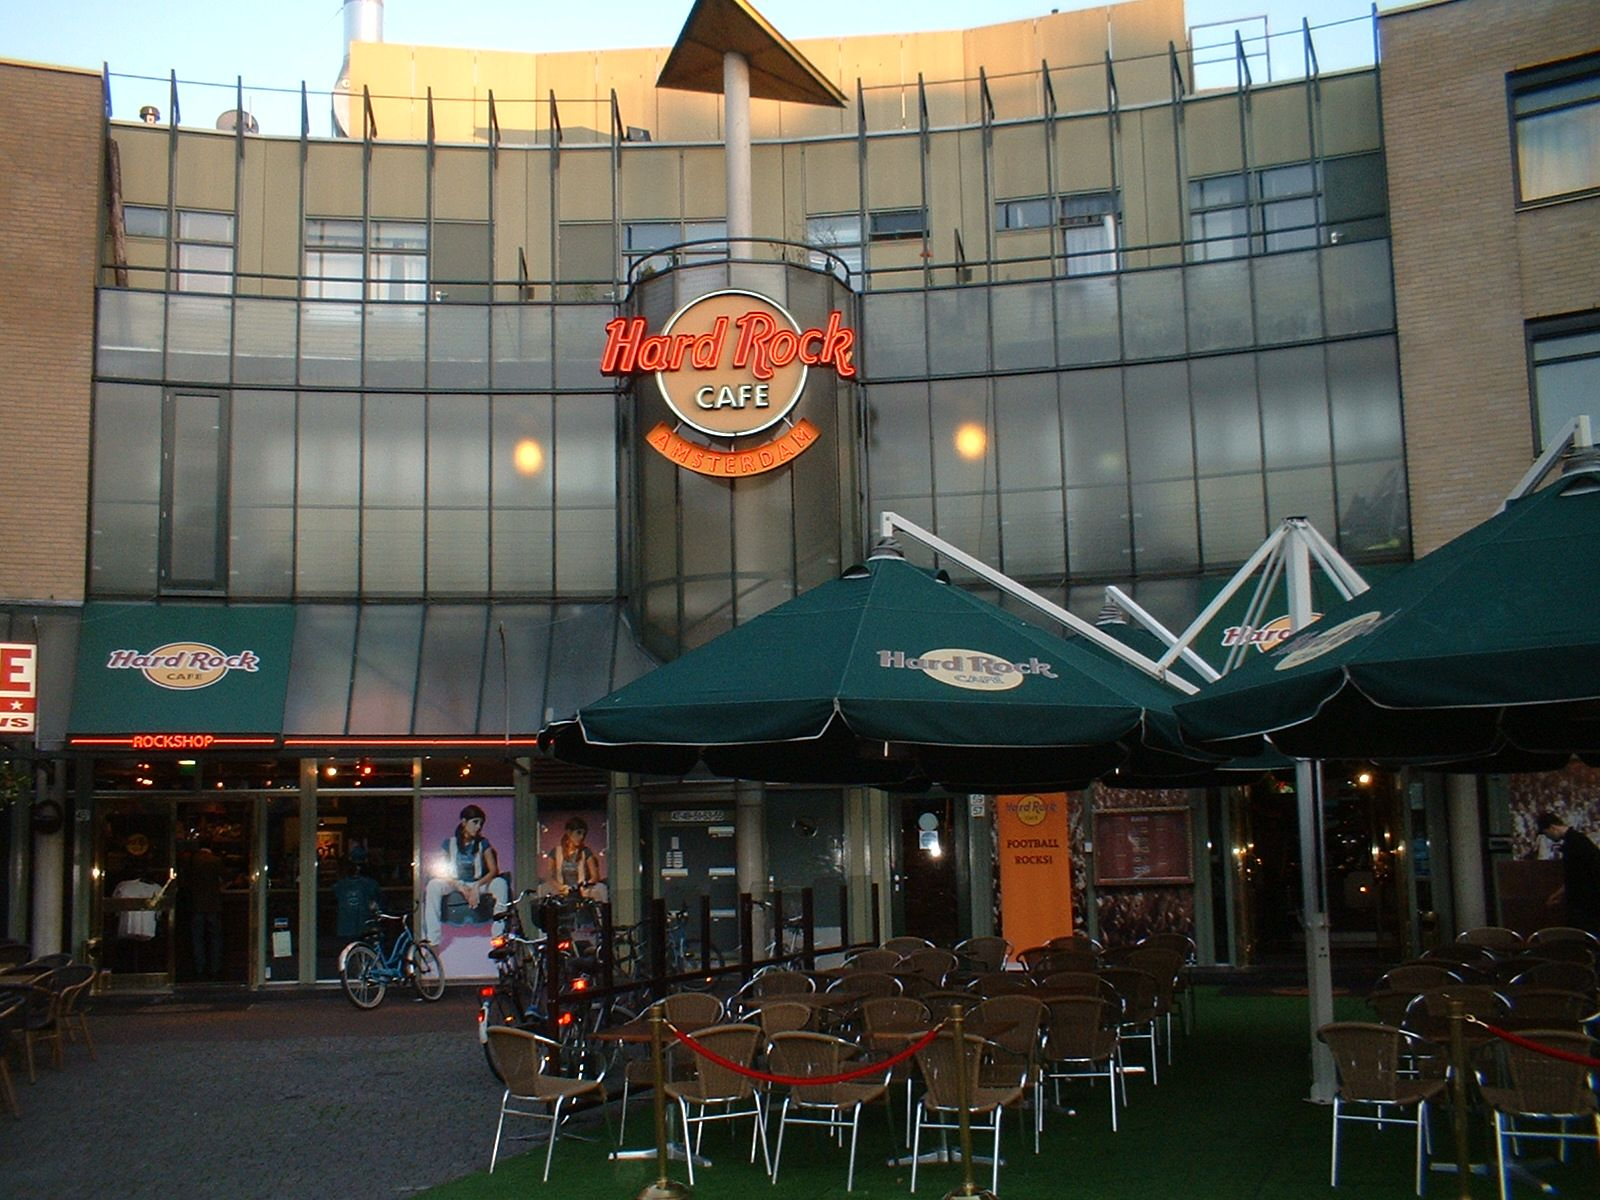 Pin By Karen Waddy On Amsterdam With Images Hard Rock Cafe Jazz Bar Amsterdam